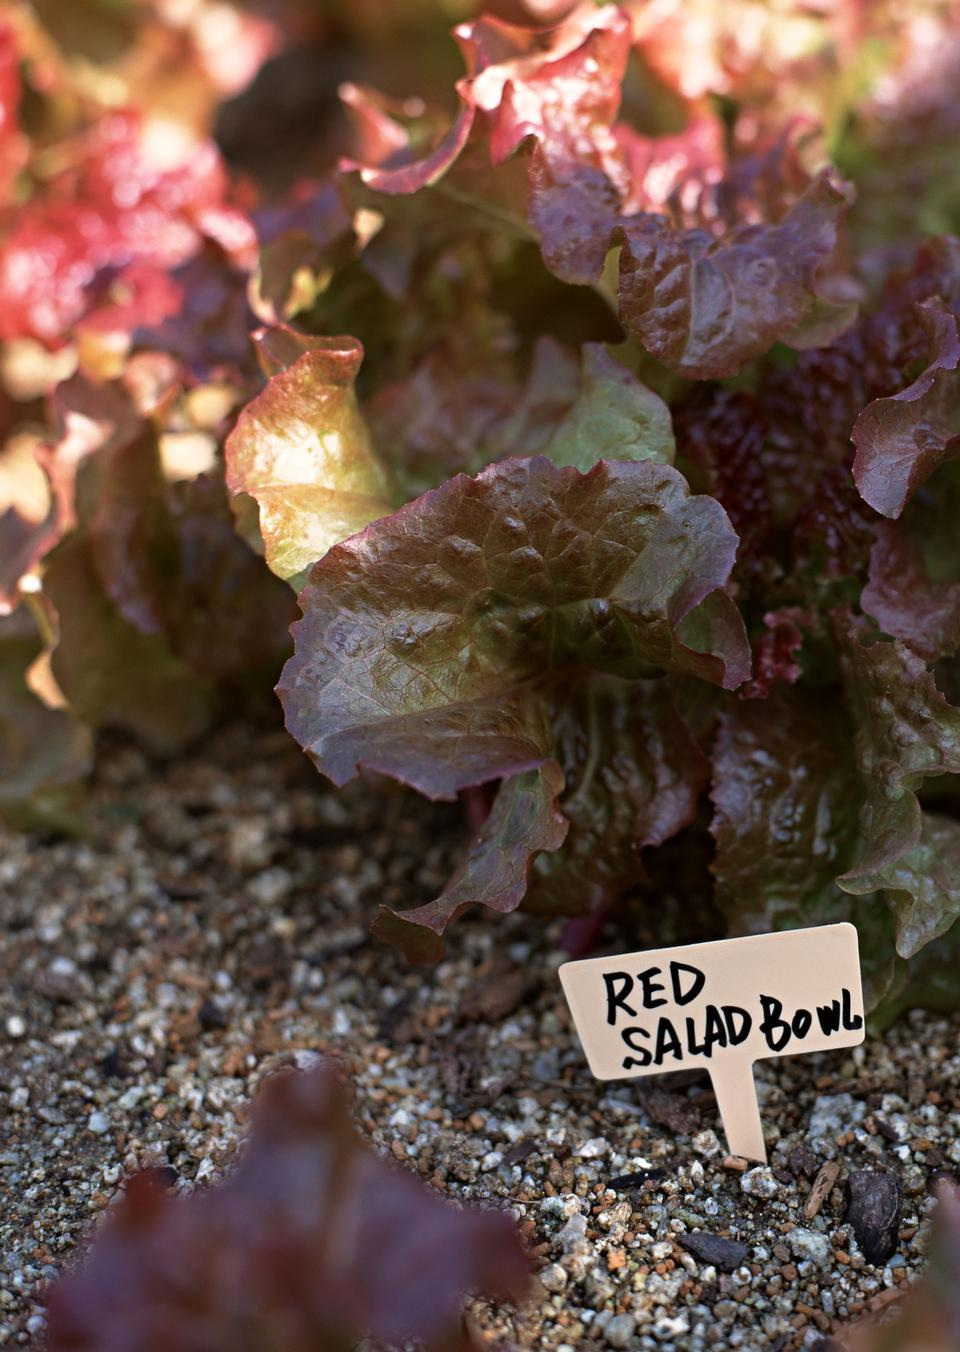 Red lettuce in garden